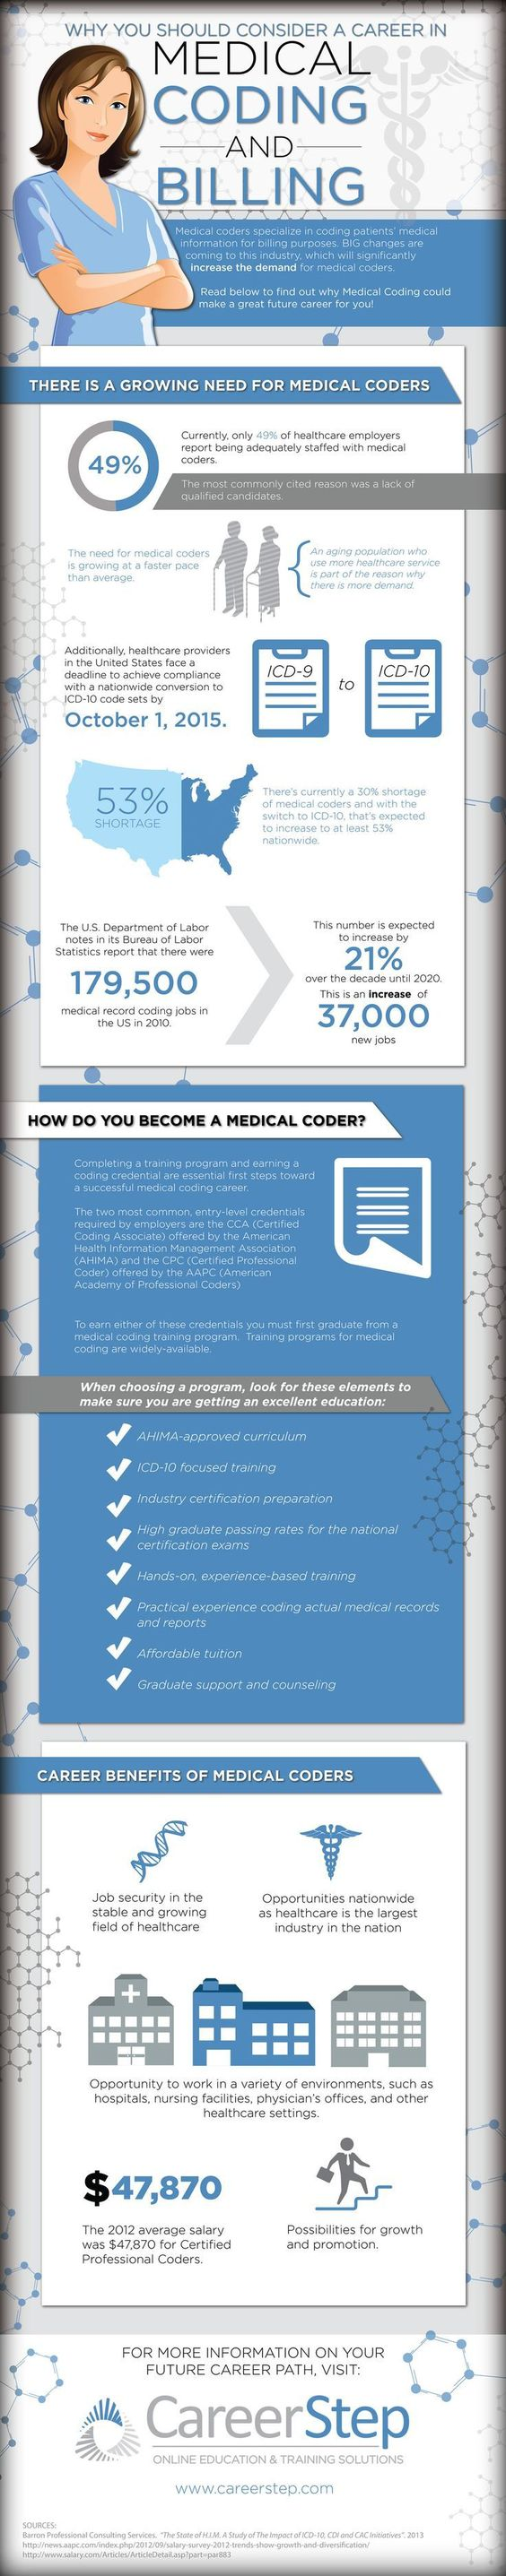 objective for nursing assistant resume%0A    Medical Assistant Resume Objective Examples   Job Descriptions  Resume  Examples  Samples  Templates  Career   Resumes   Pinterest   Medical  assistant and